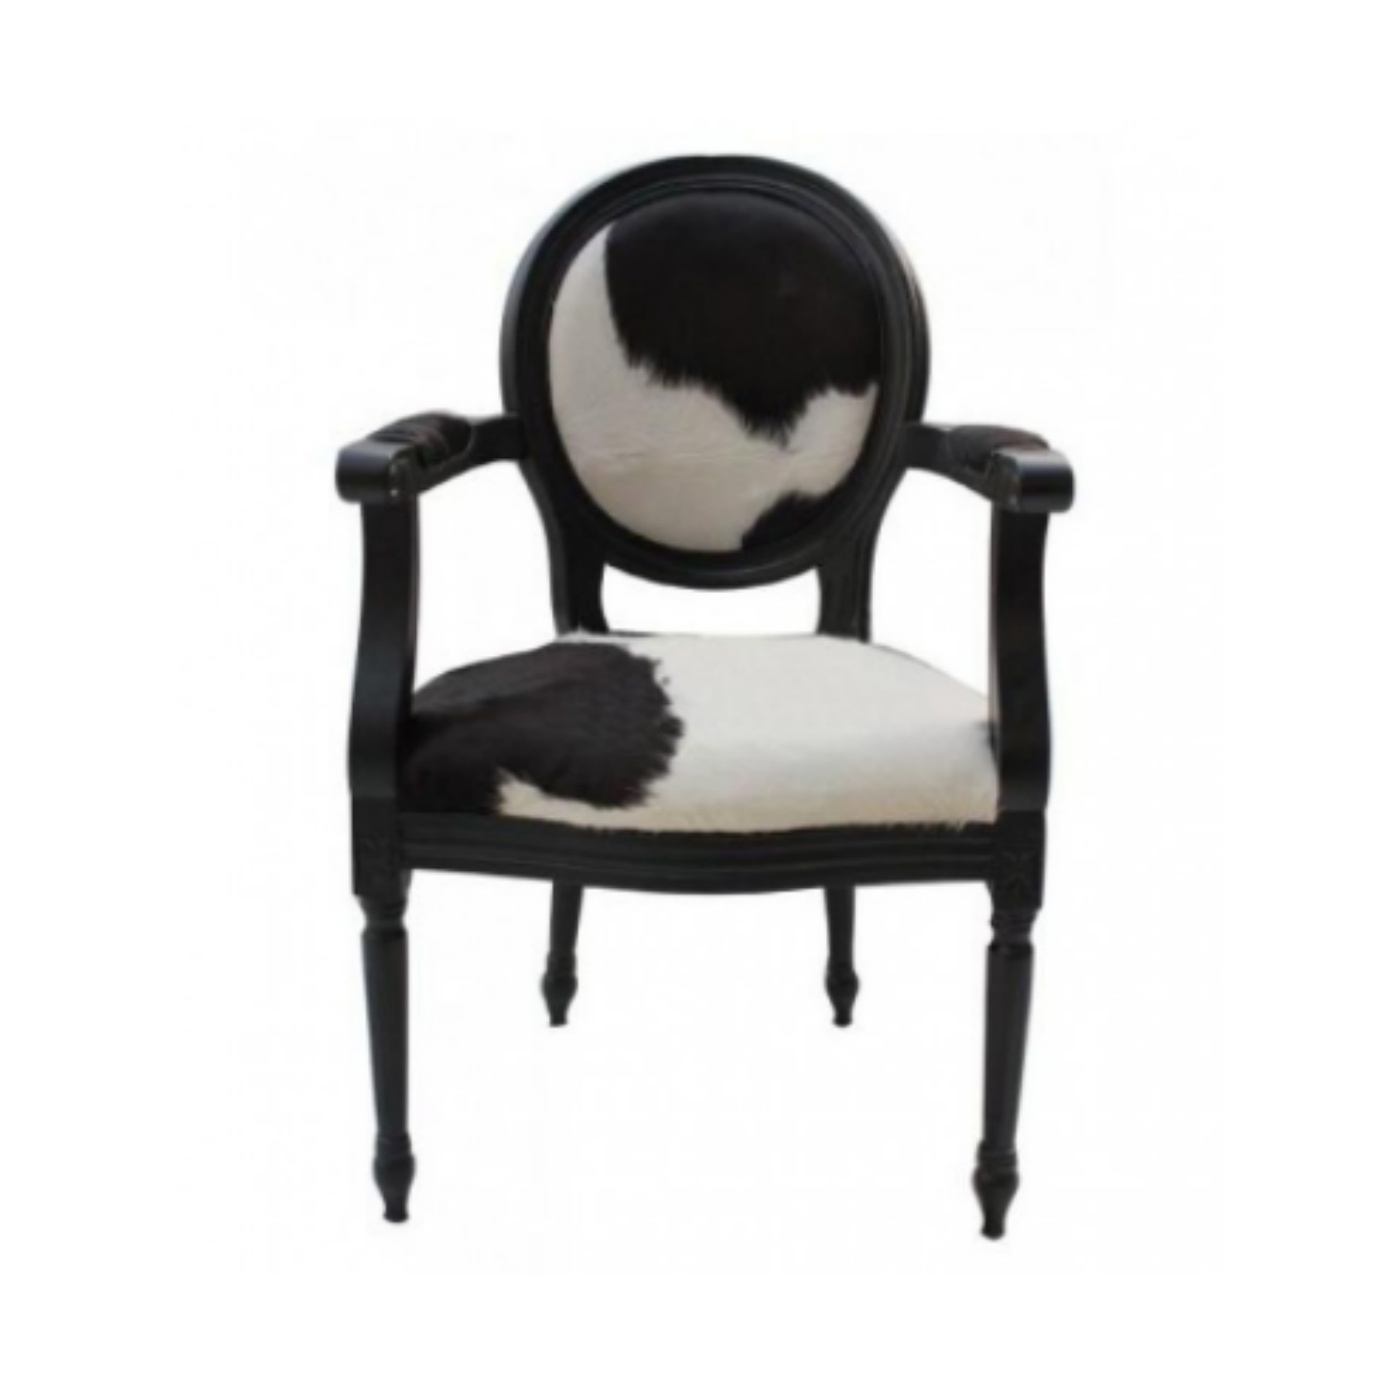 cowhide chairs nz spandex chair cover rental atlanta miss lolo steal my style